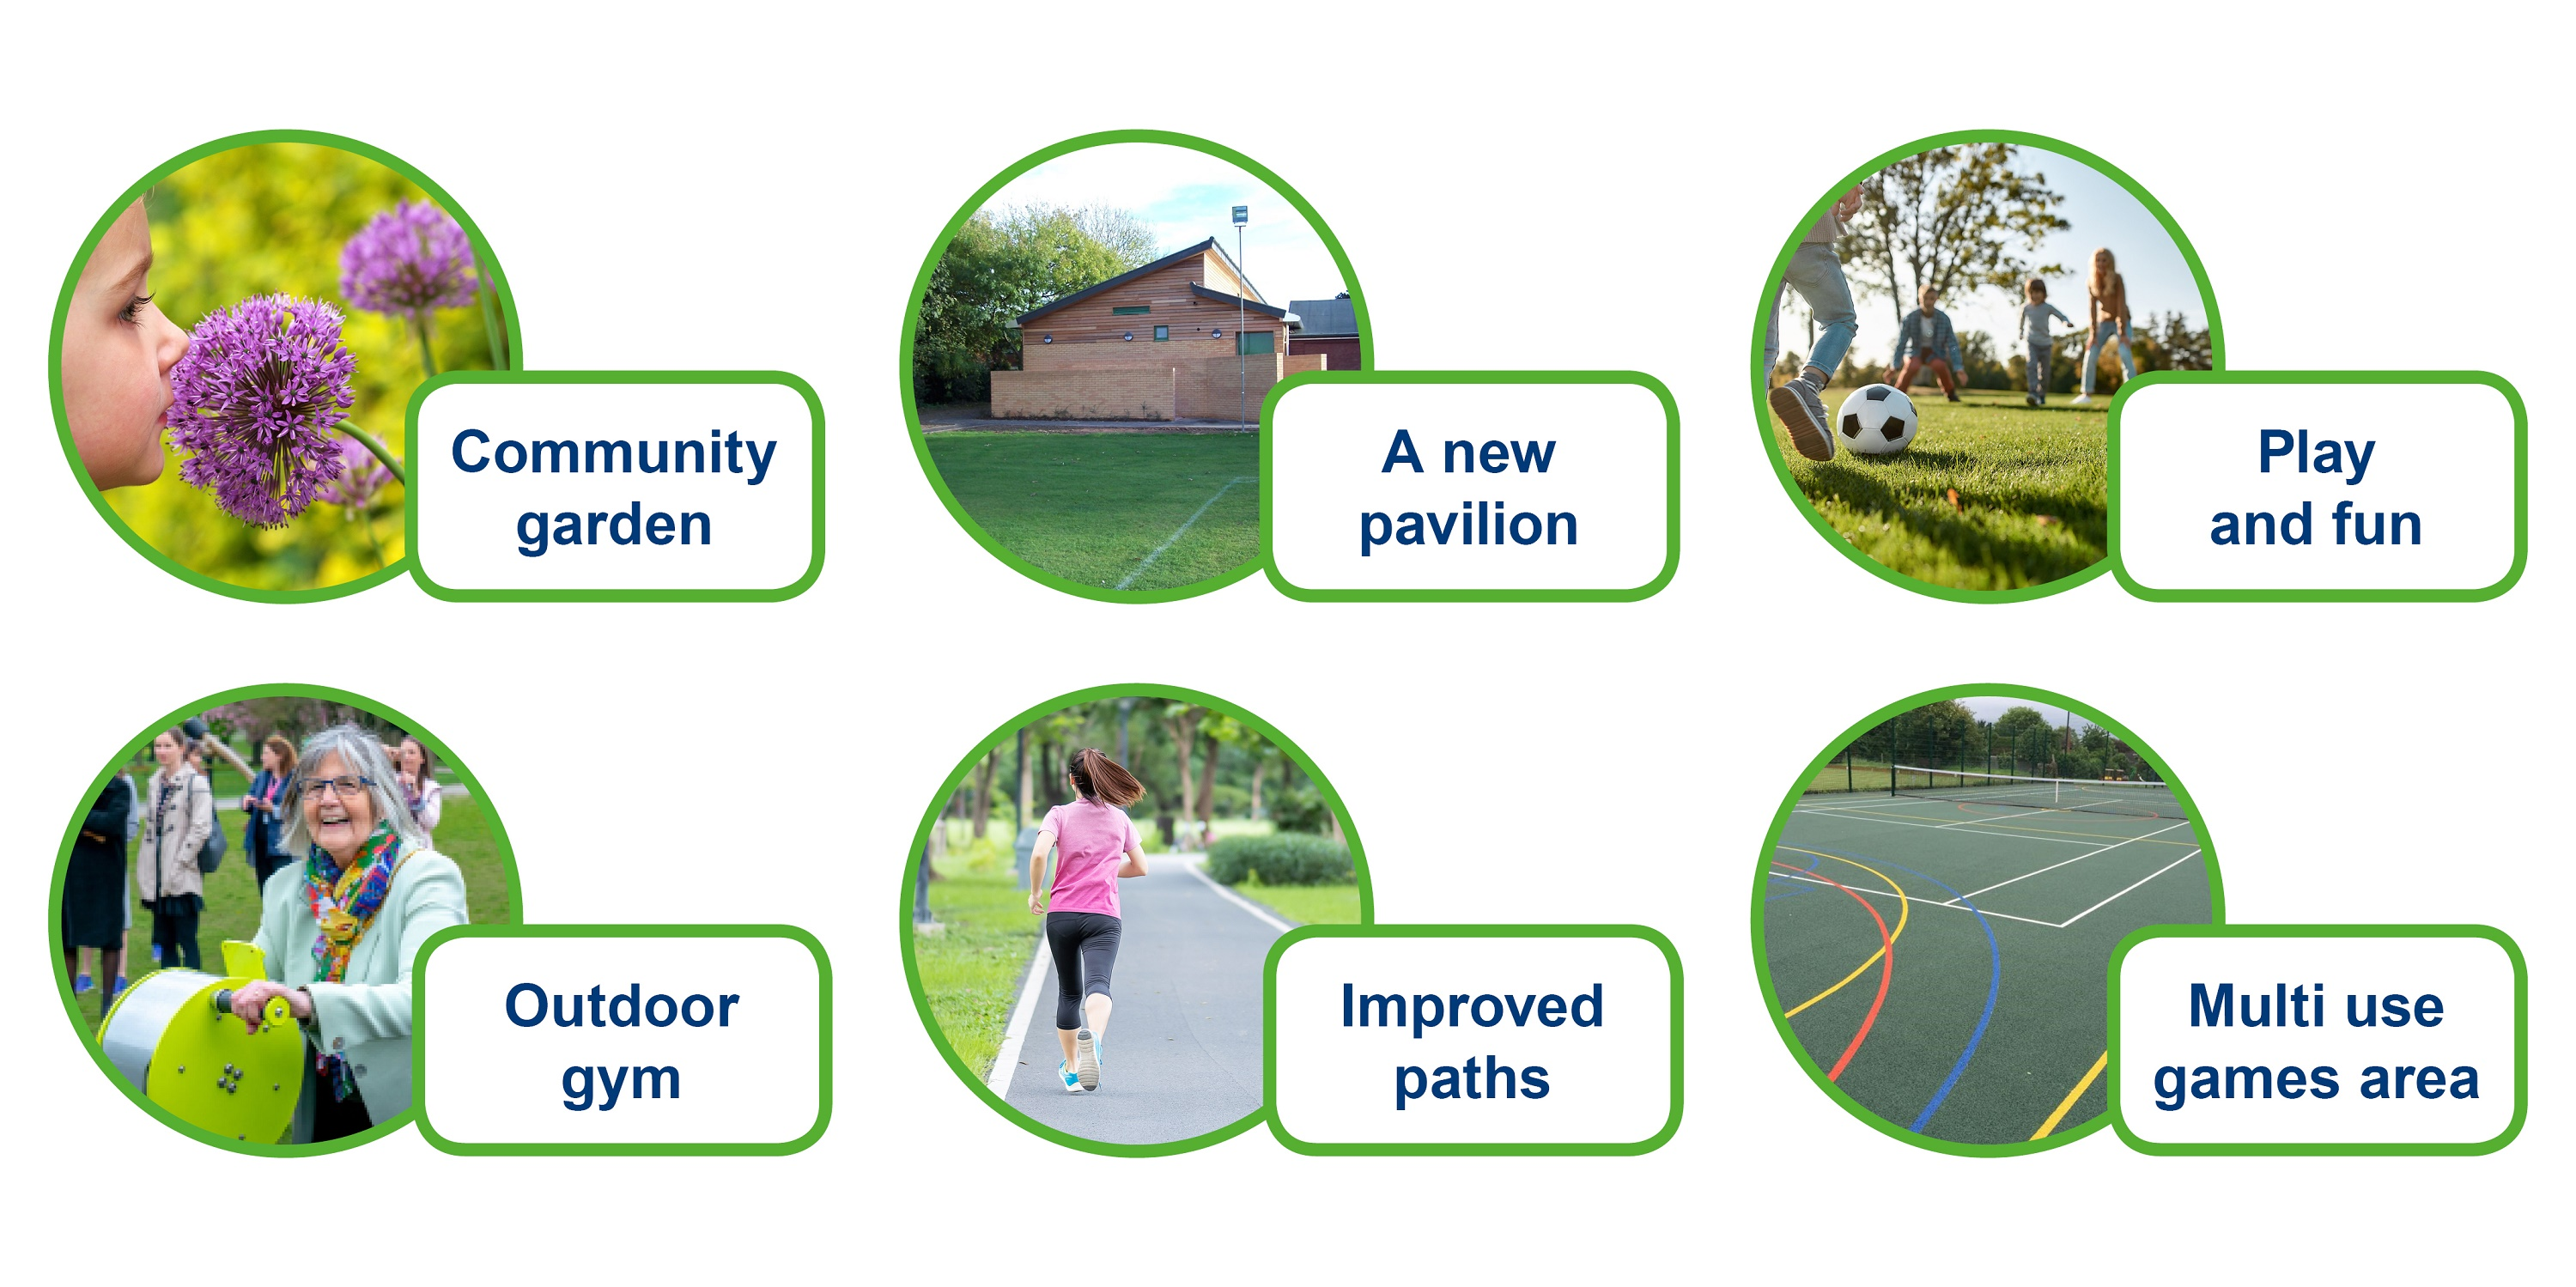 Pictures showing some of the facilities proposed for the park, such as outdoor gym equipment.